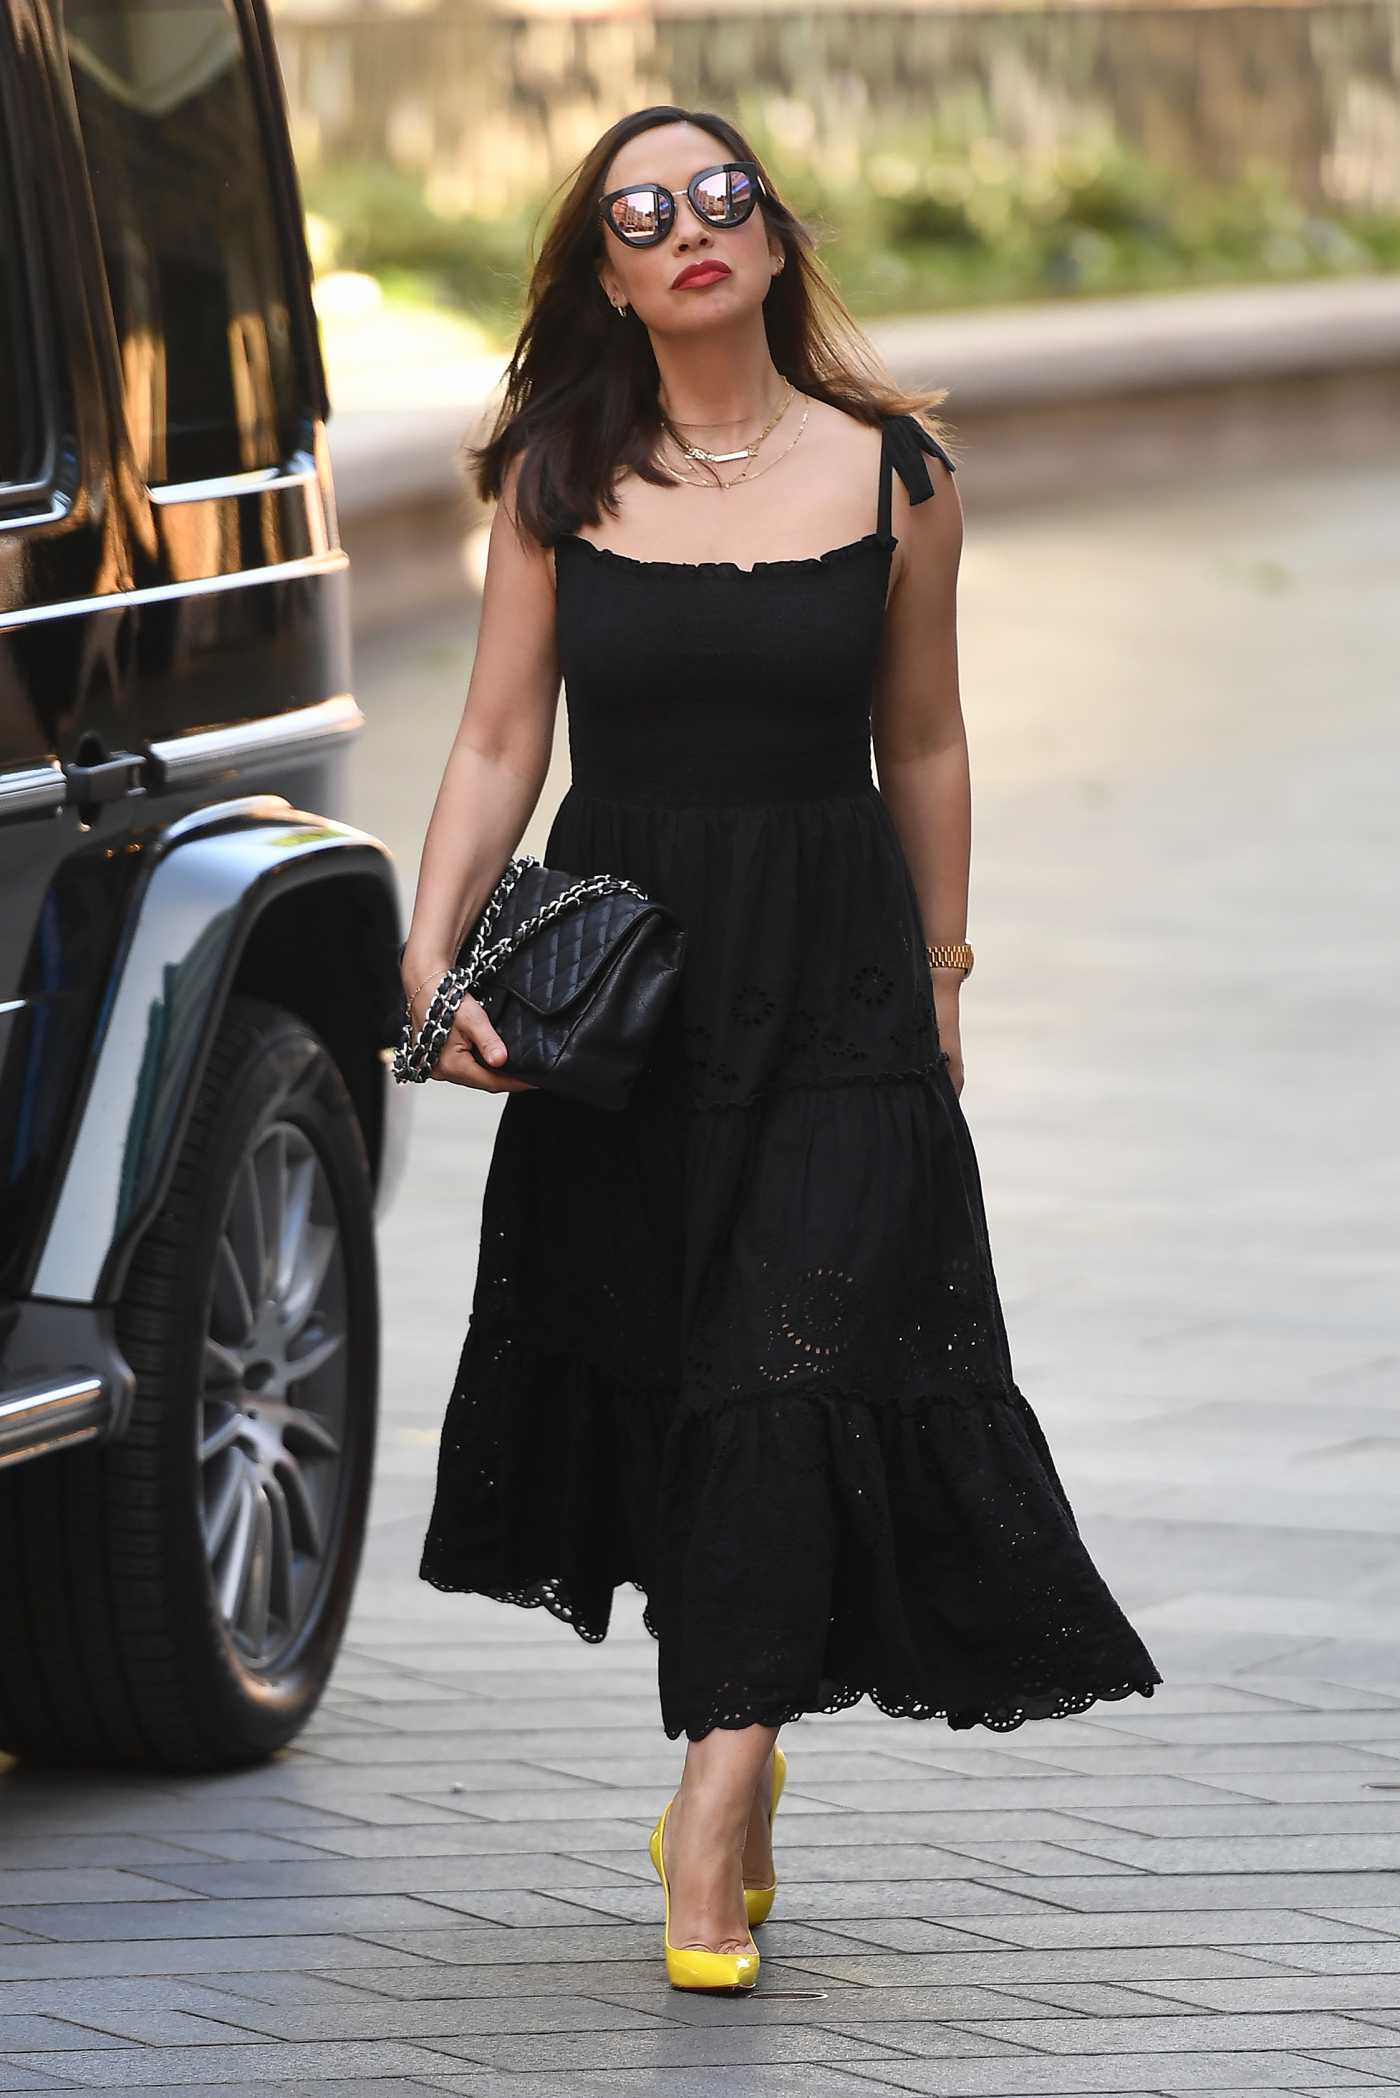 Myleene Klass in a Black Dress Arrives at the Global Radio Studios in London 05/28/2020